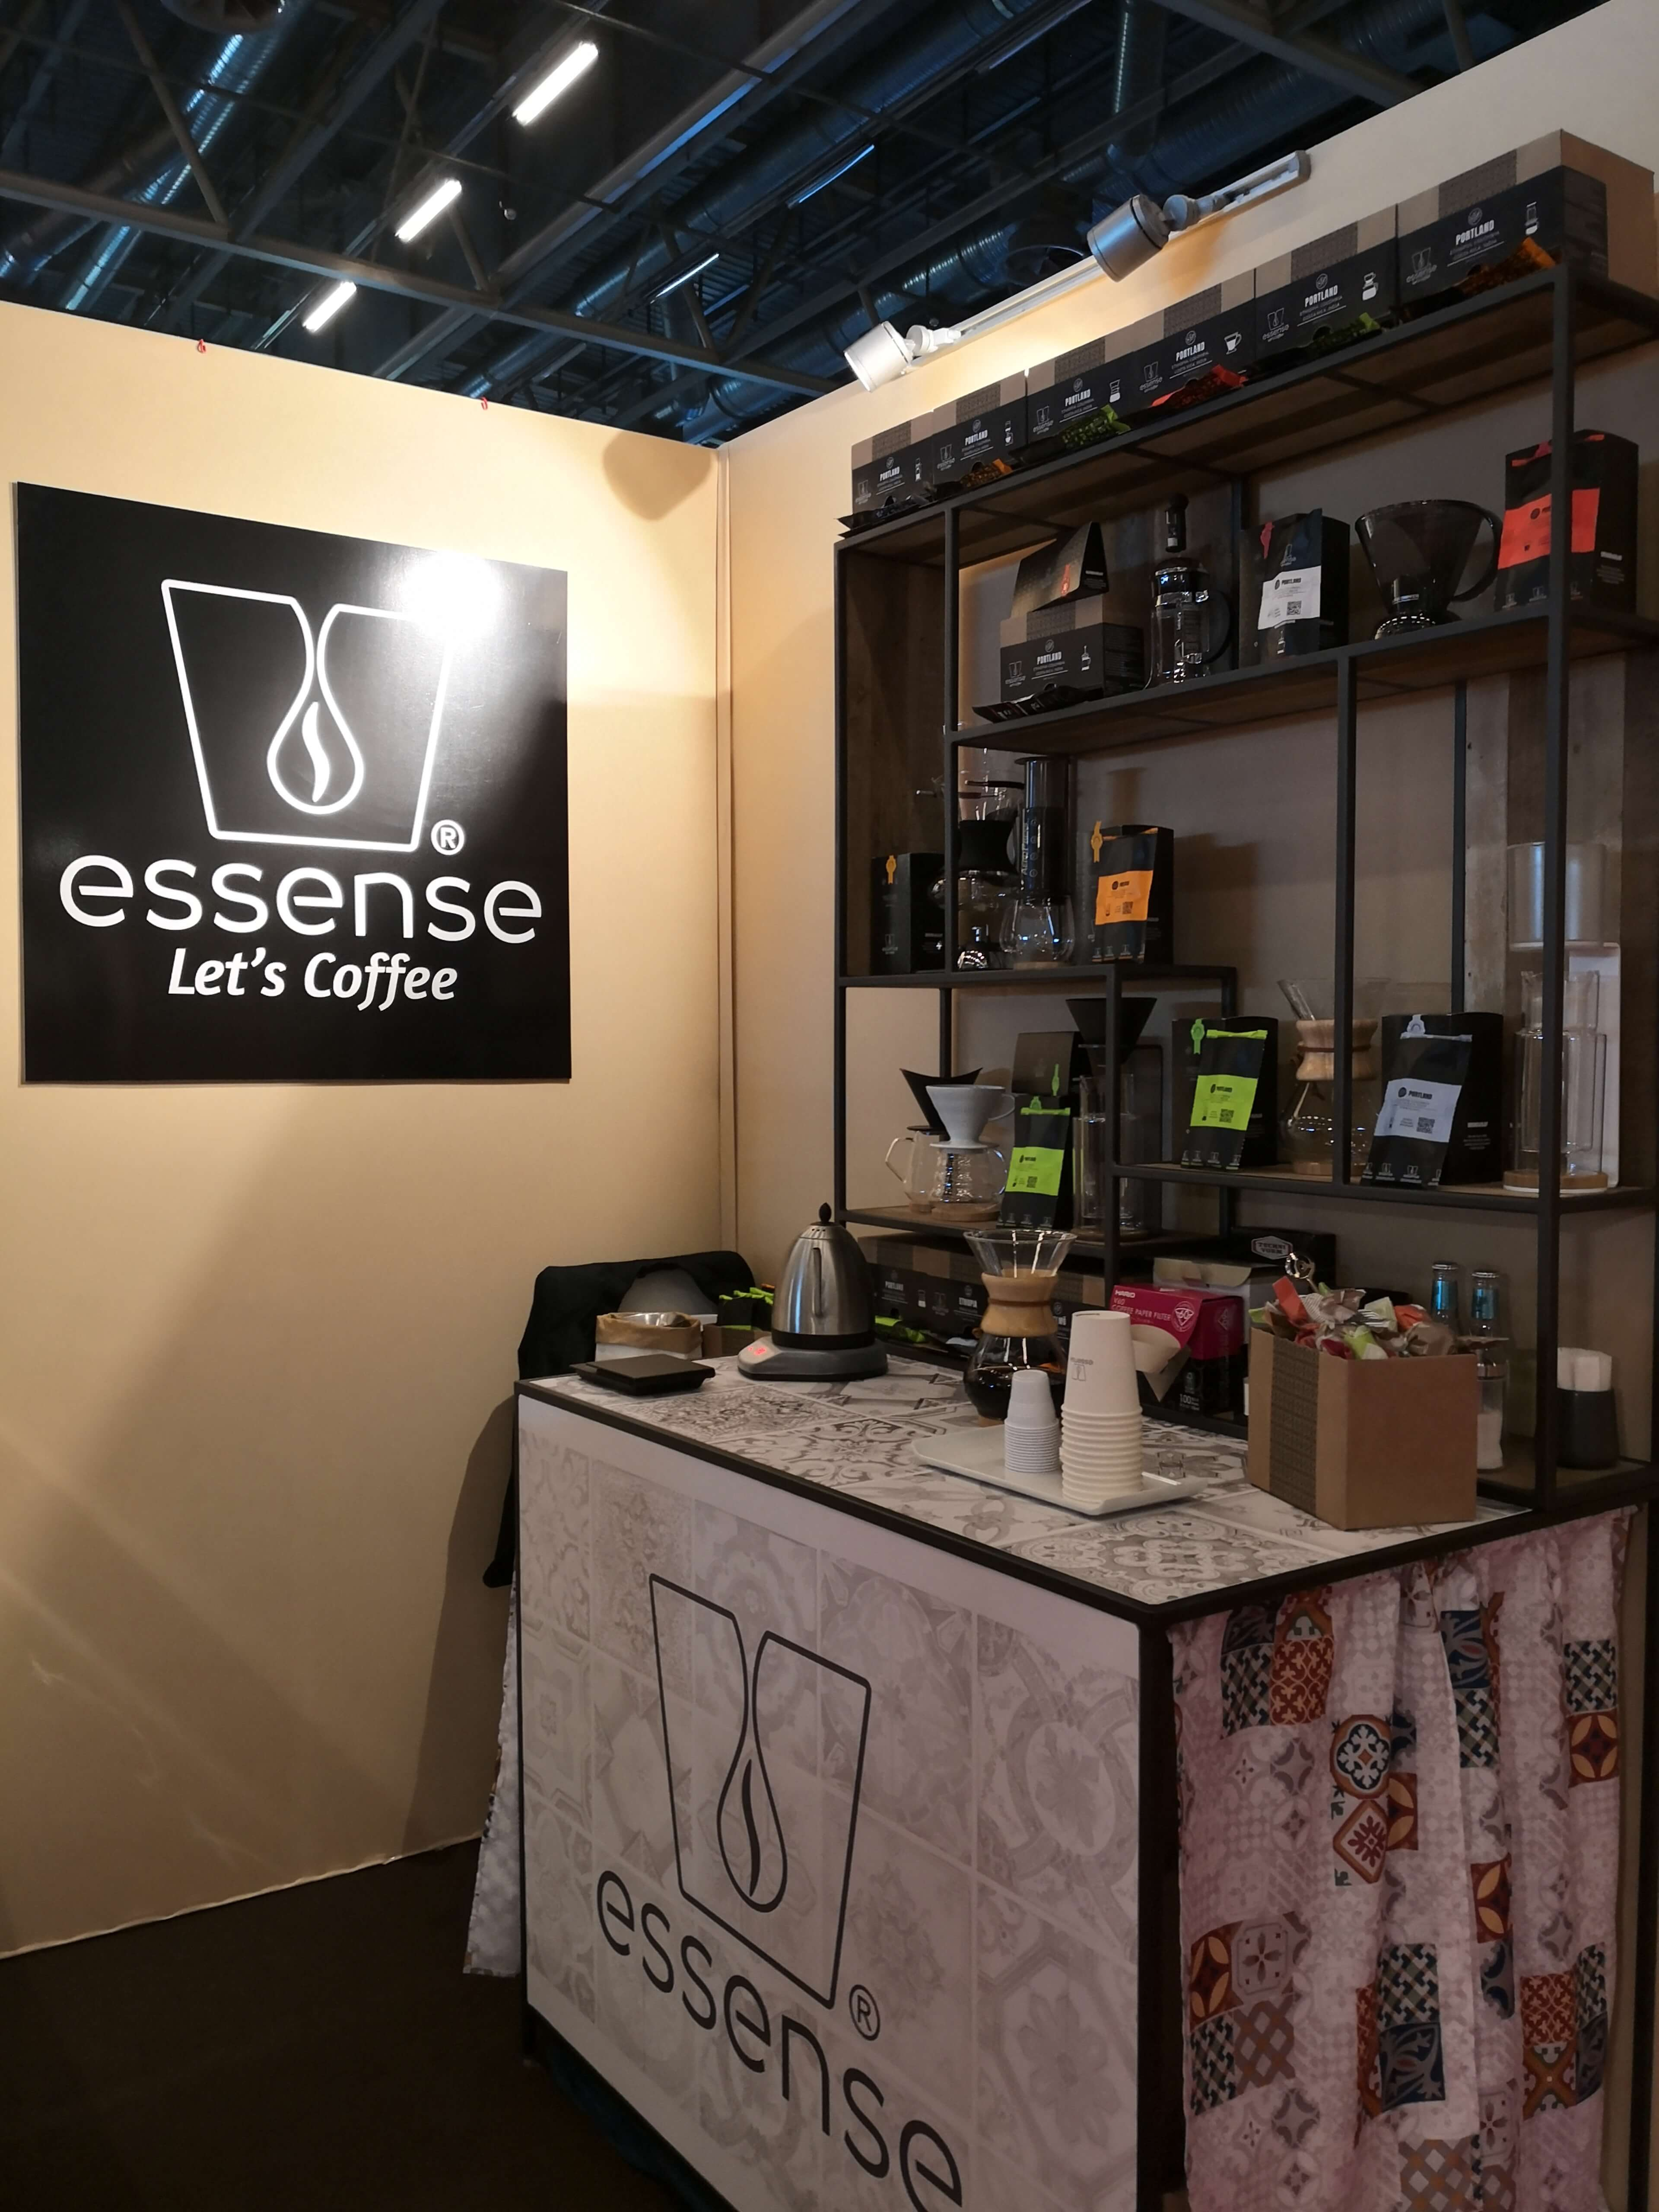 Essense coffee stand in gourmet selection